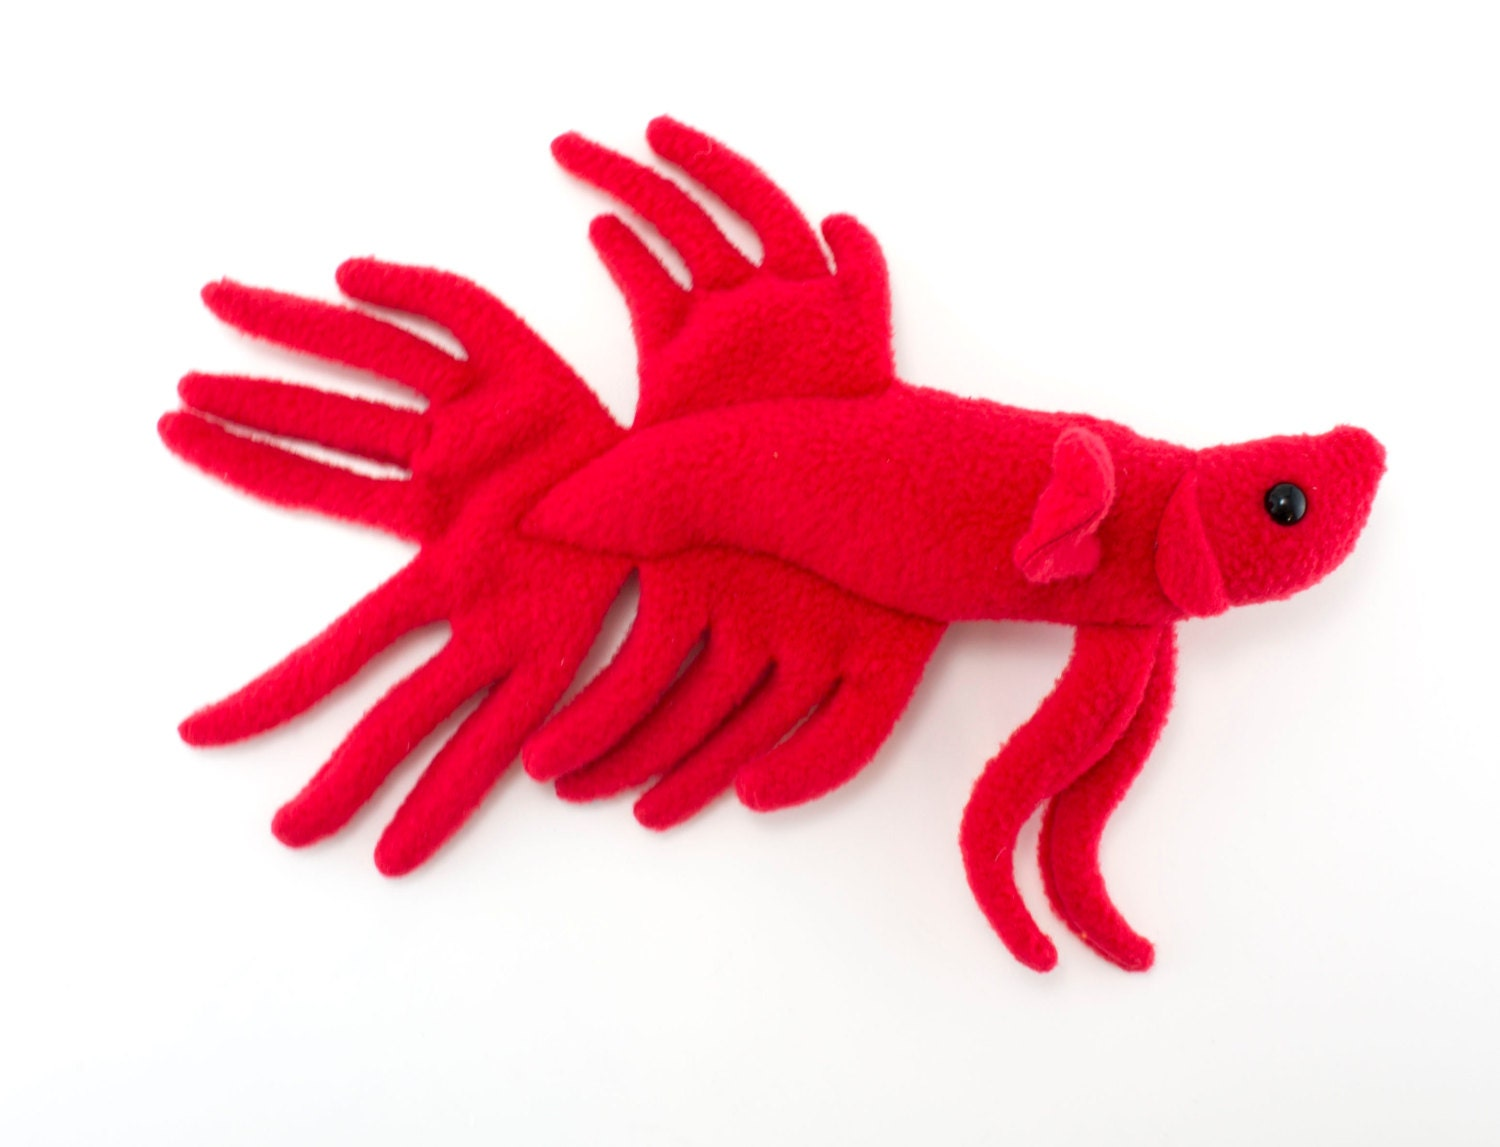 Red betta fish stuffed animal plush toy crown tail type for Toys for betta fish